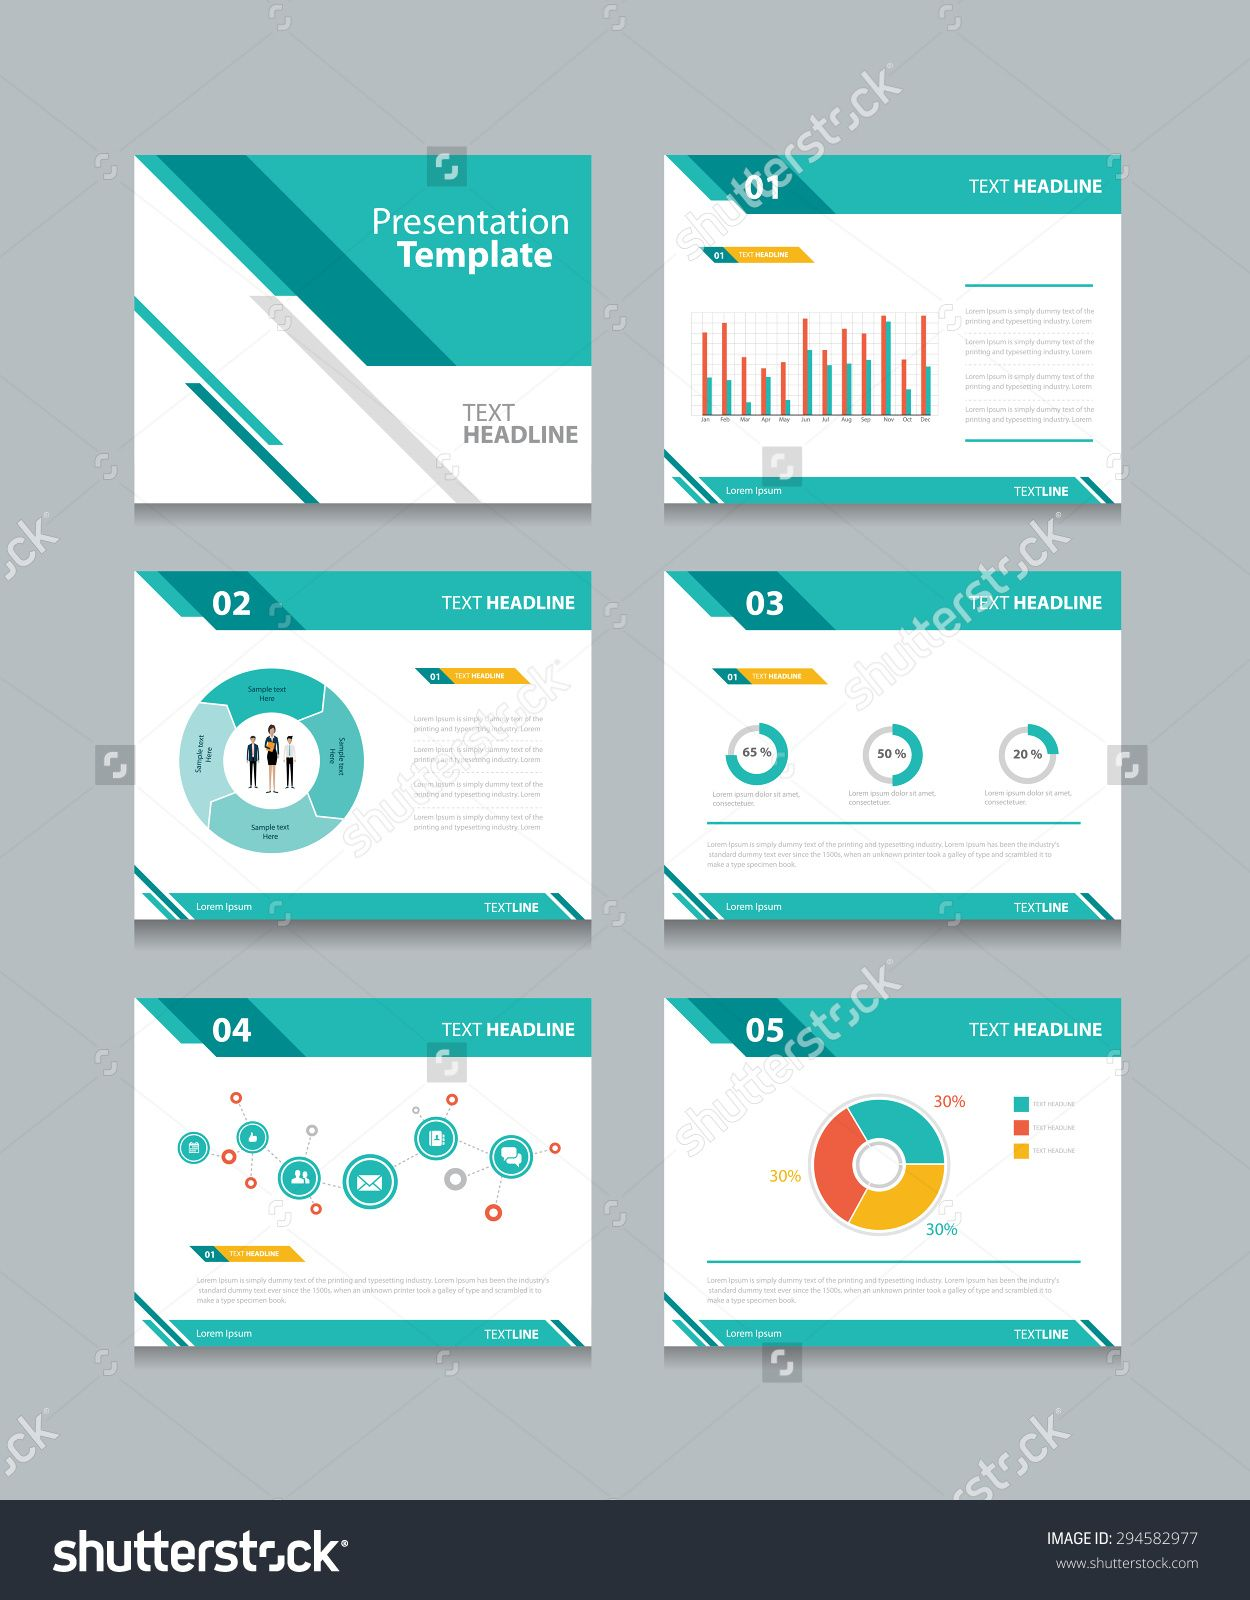 Business presentation template setpowerpoint template design business presentation template setpowerpoint template design backgrounds accmission